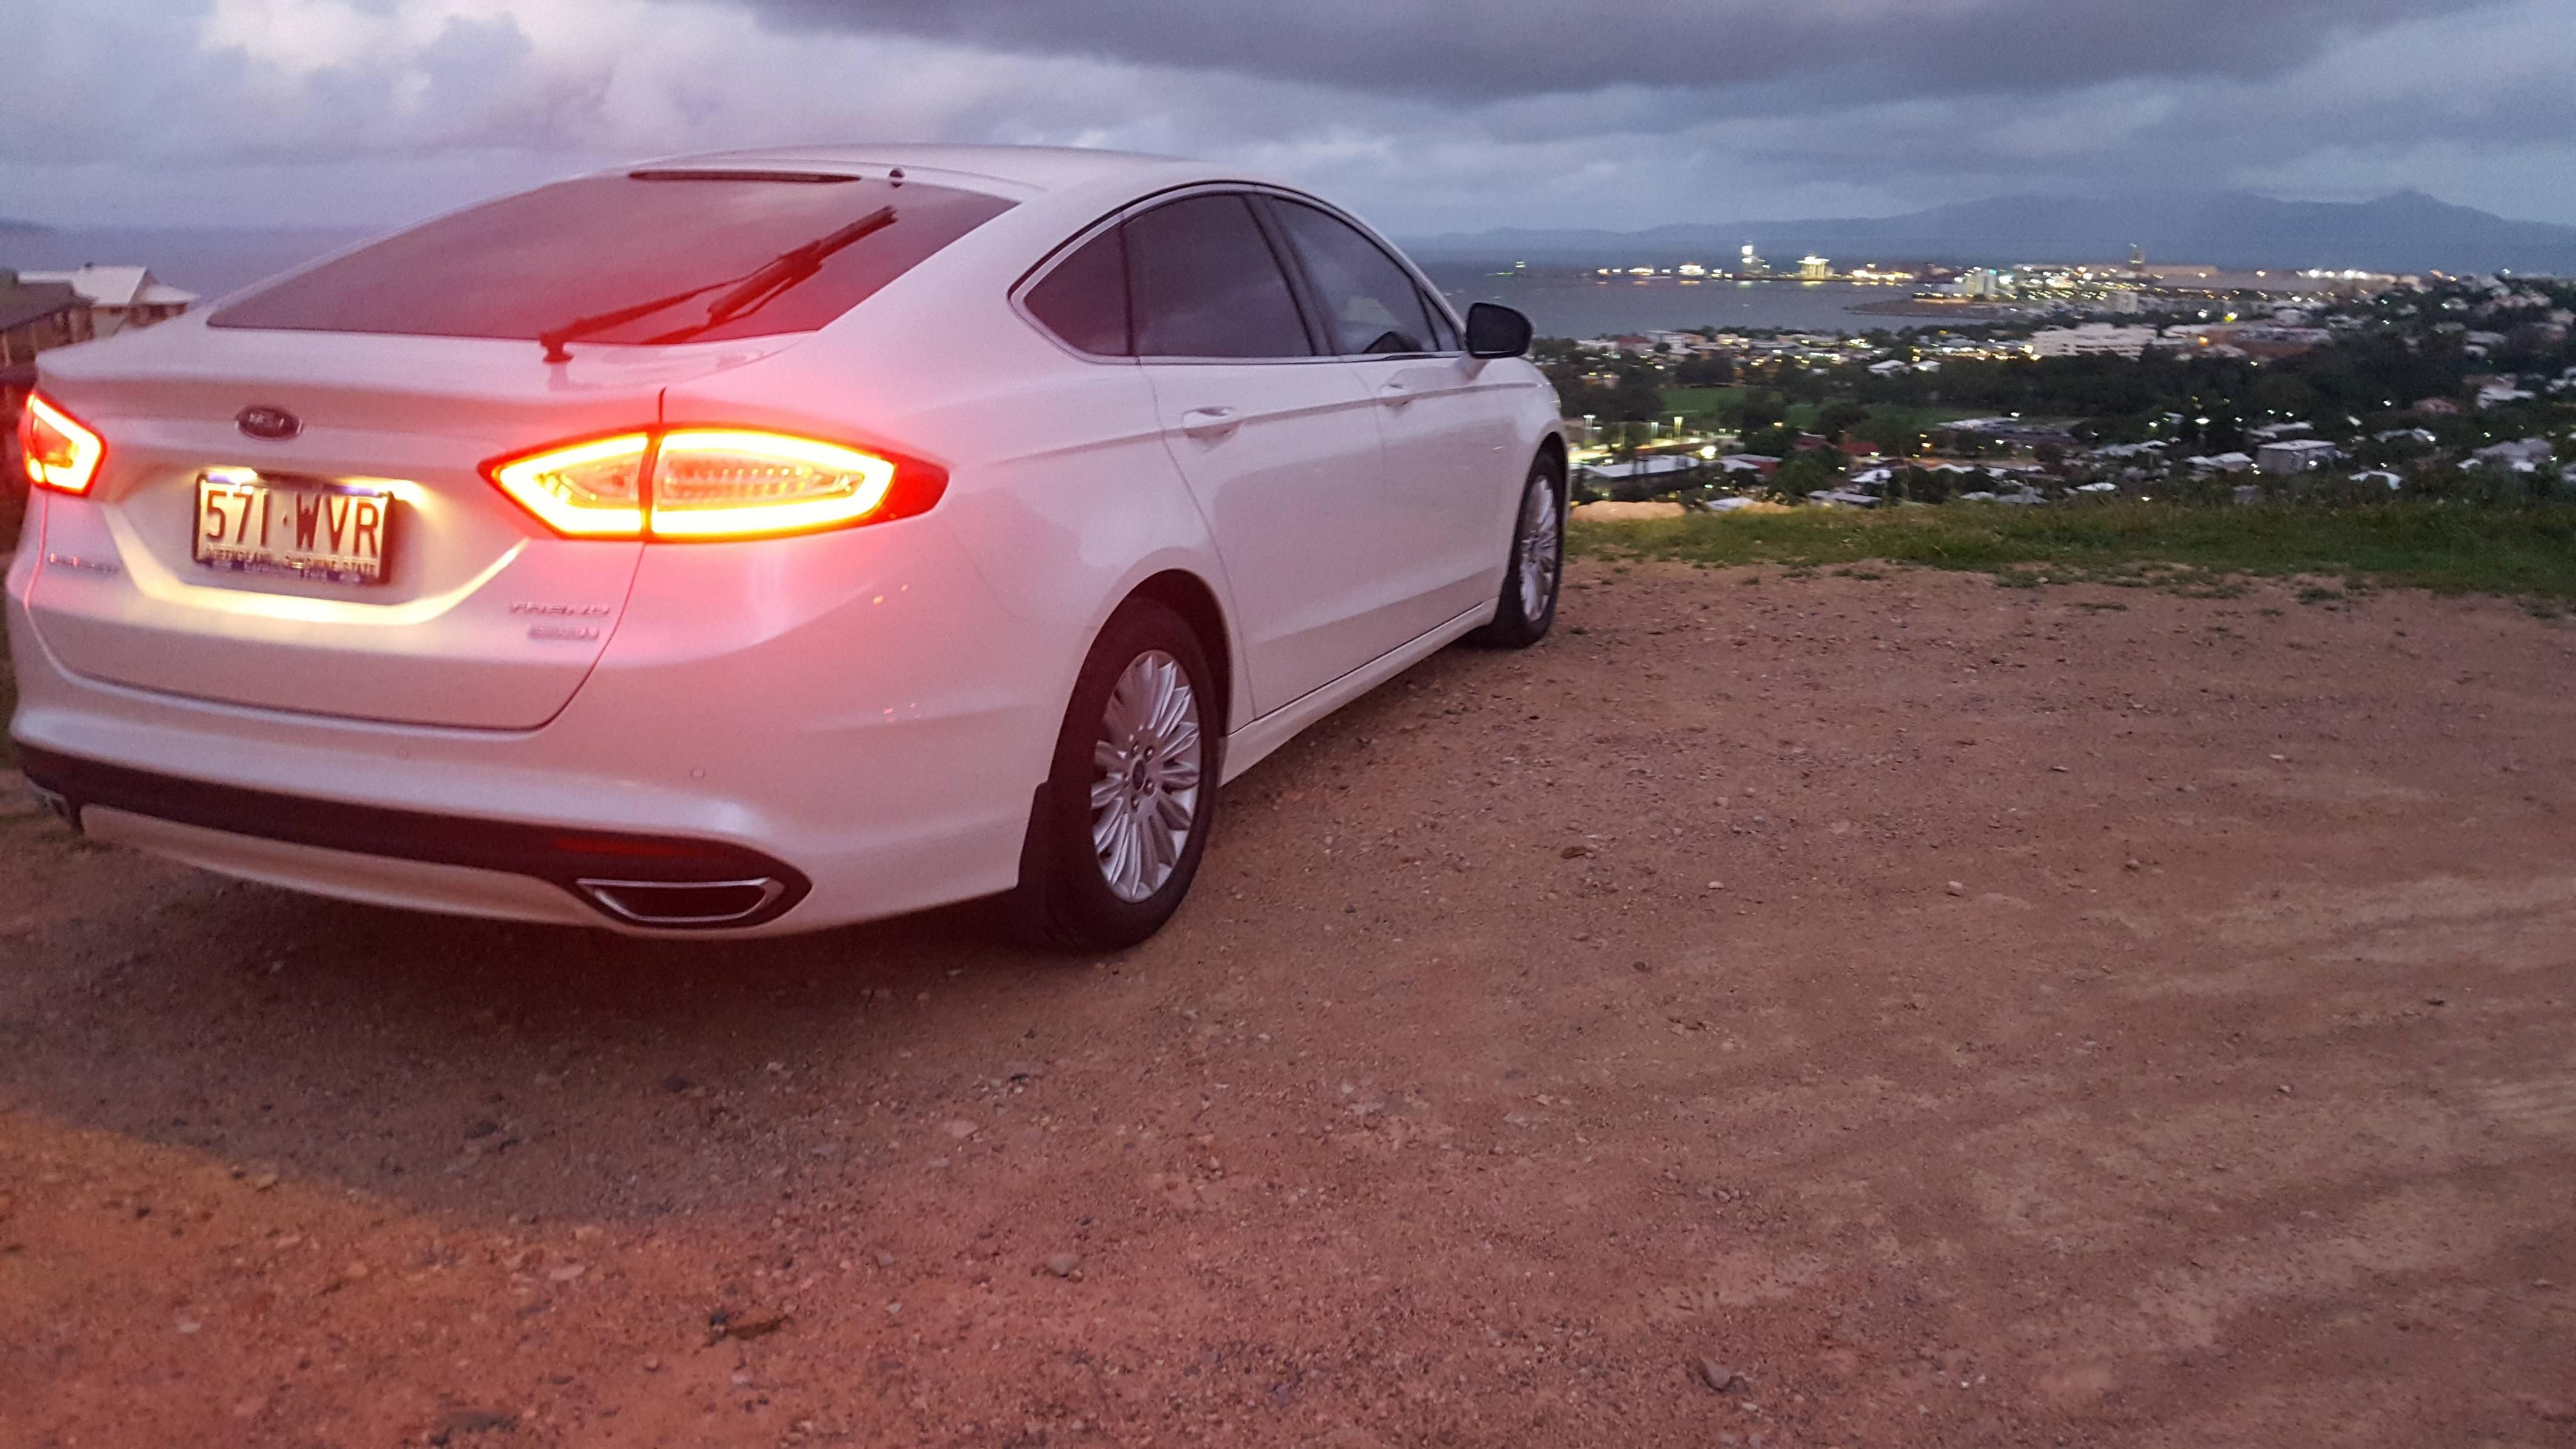 Finally Upgraded To A 2016 Ford Mondeo Trend Couldn T Be Happier Ford Cars Car Fordgt Focus Fiesta Auto F150 Ford Mondeo Ford Ford Gt